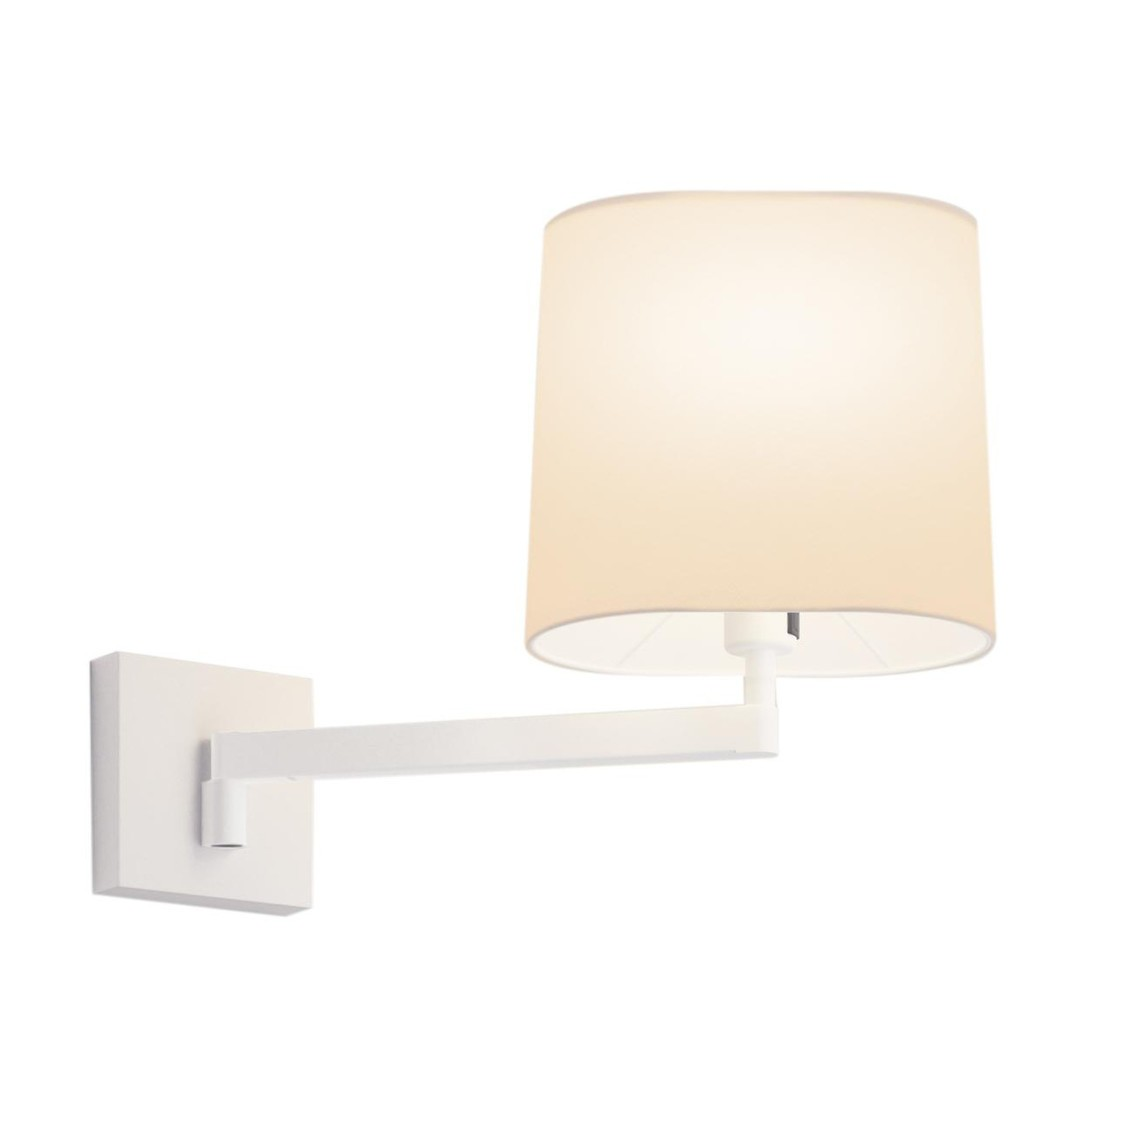 Swing Wall Lamp Vibia Swing 0509 Wall Lamp Ambientedirect